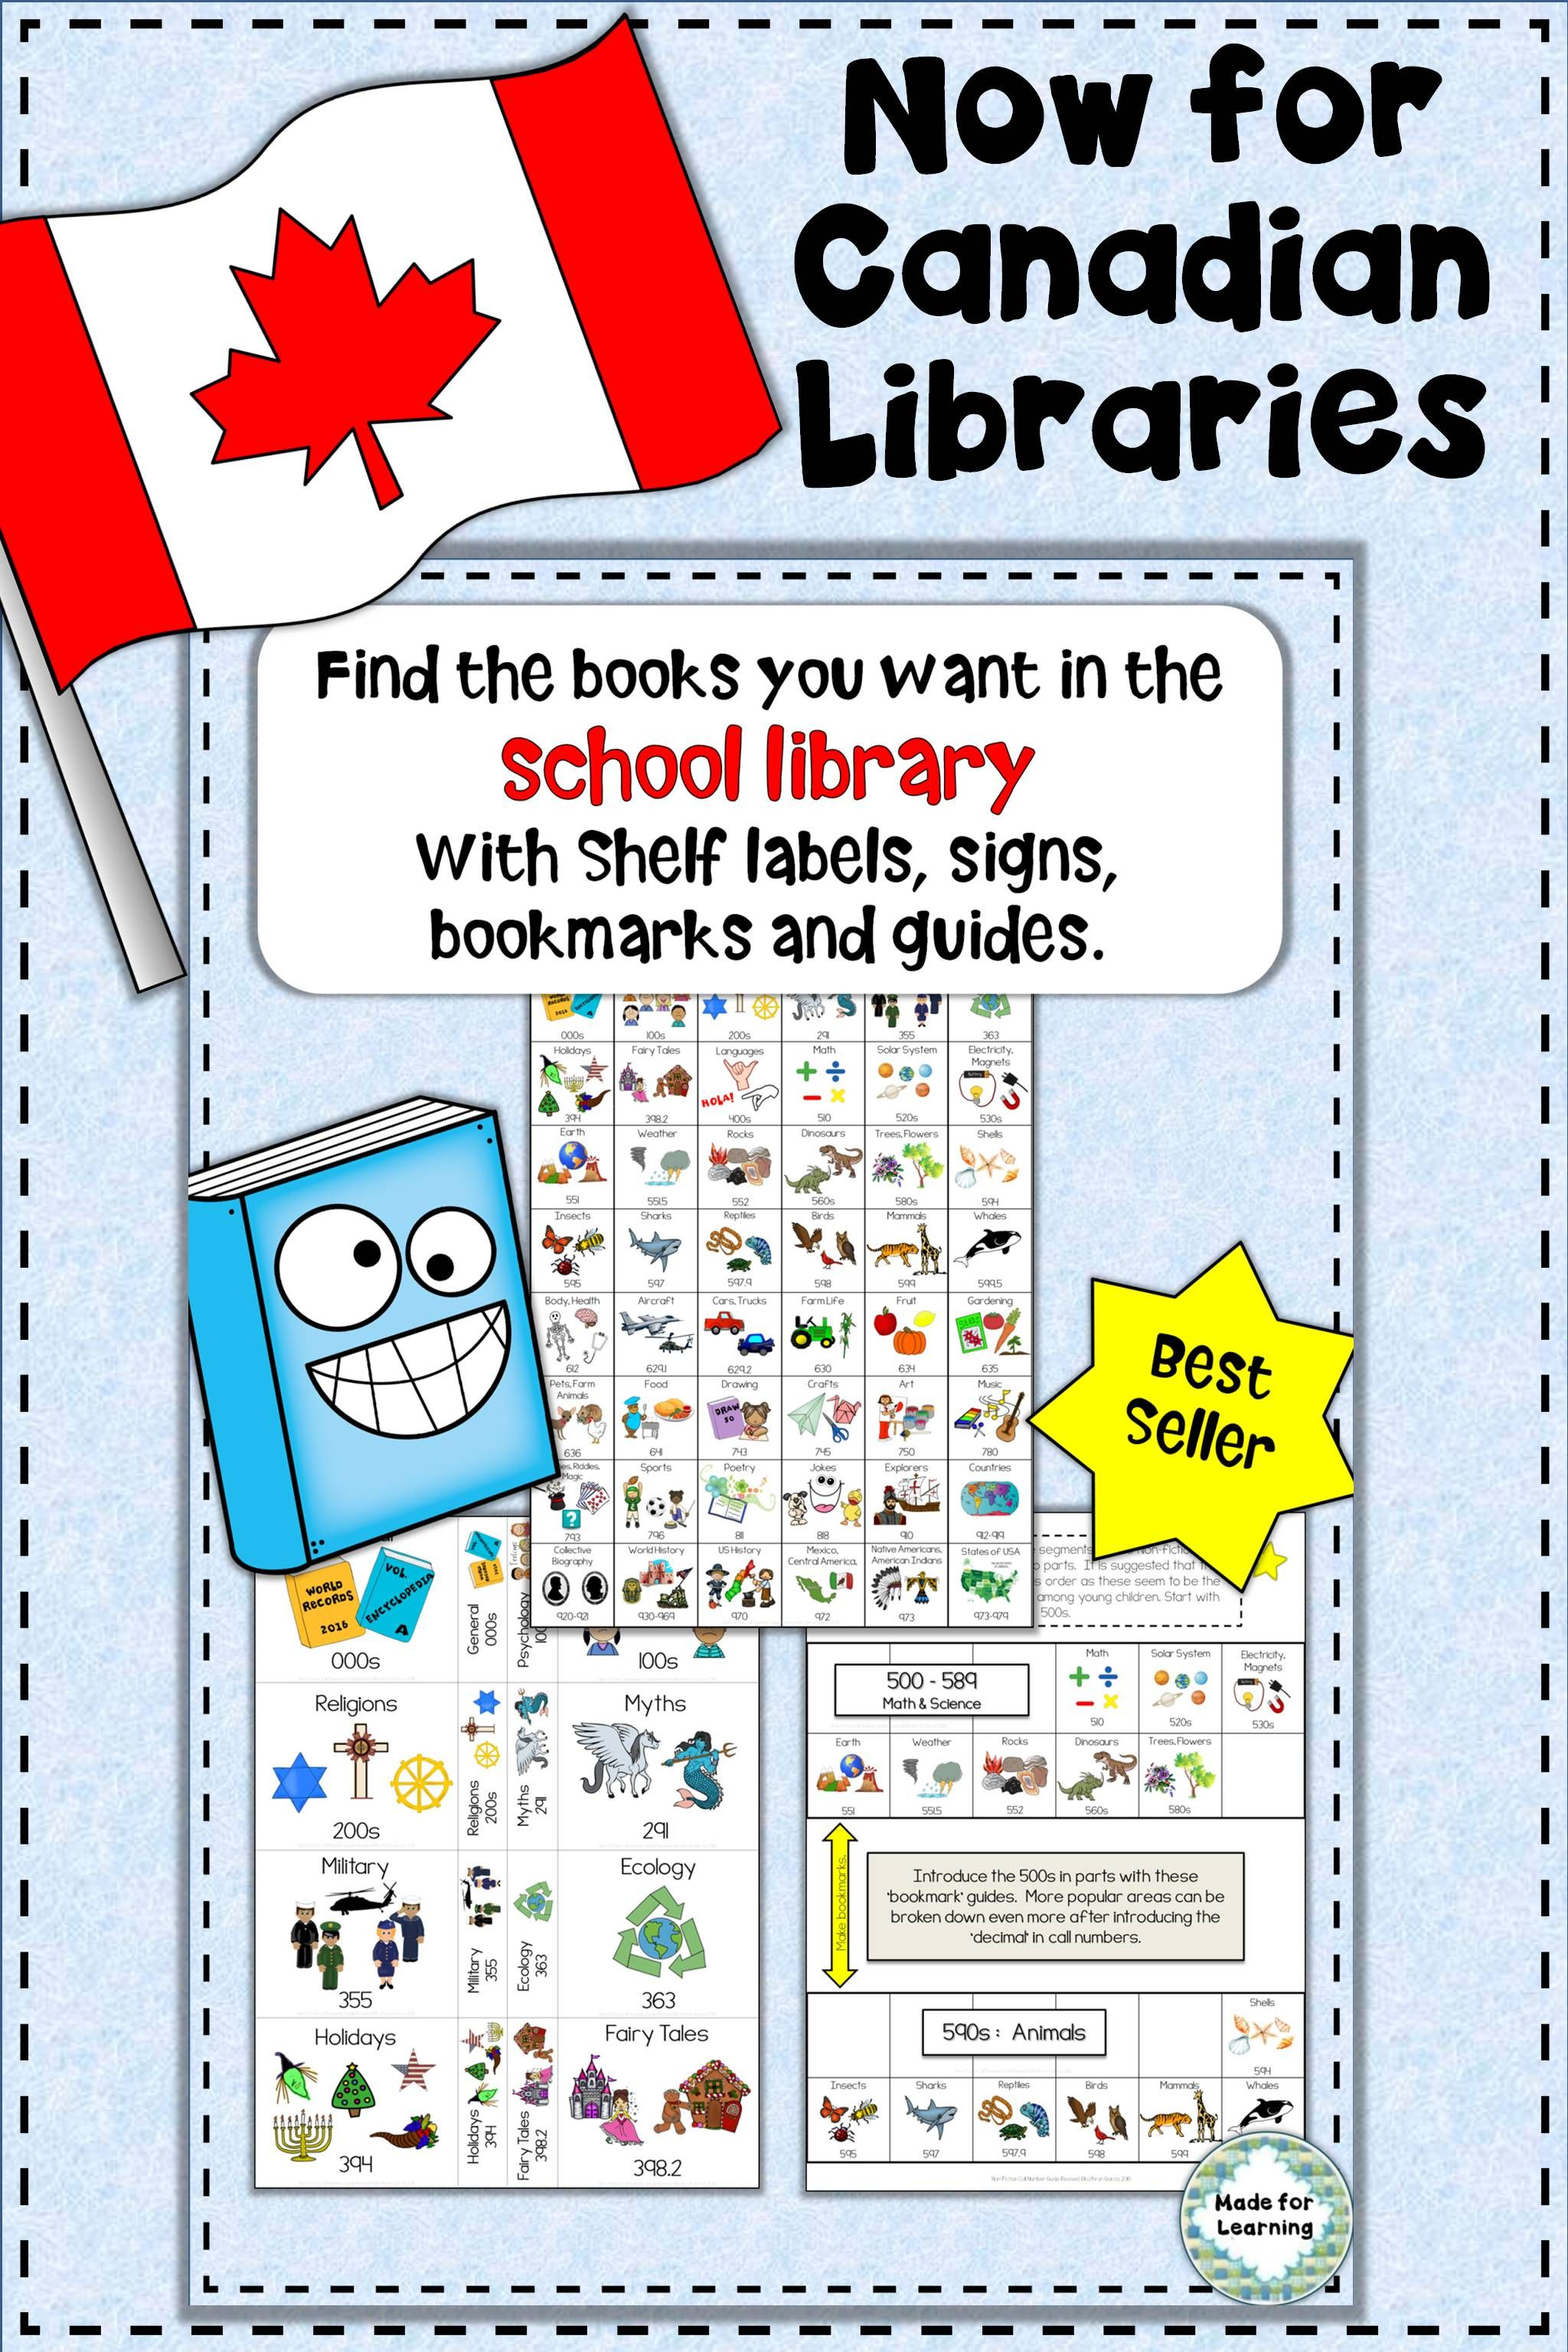 Dewey Decimal Call Number Guide For The Library For Canada